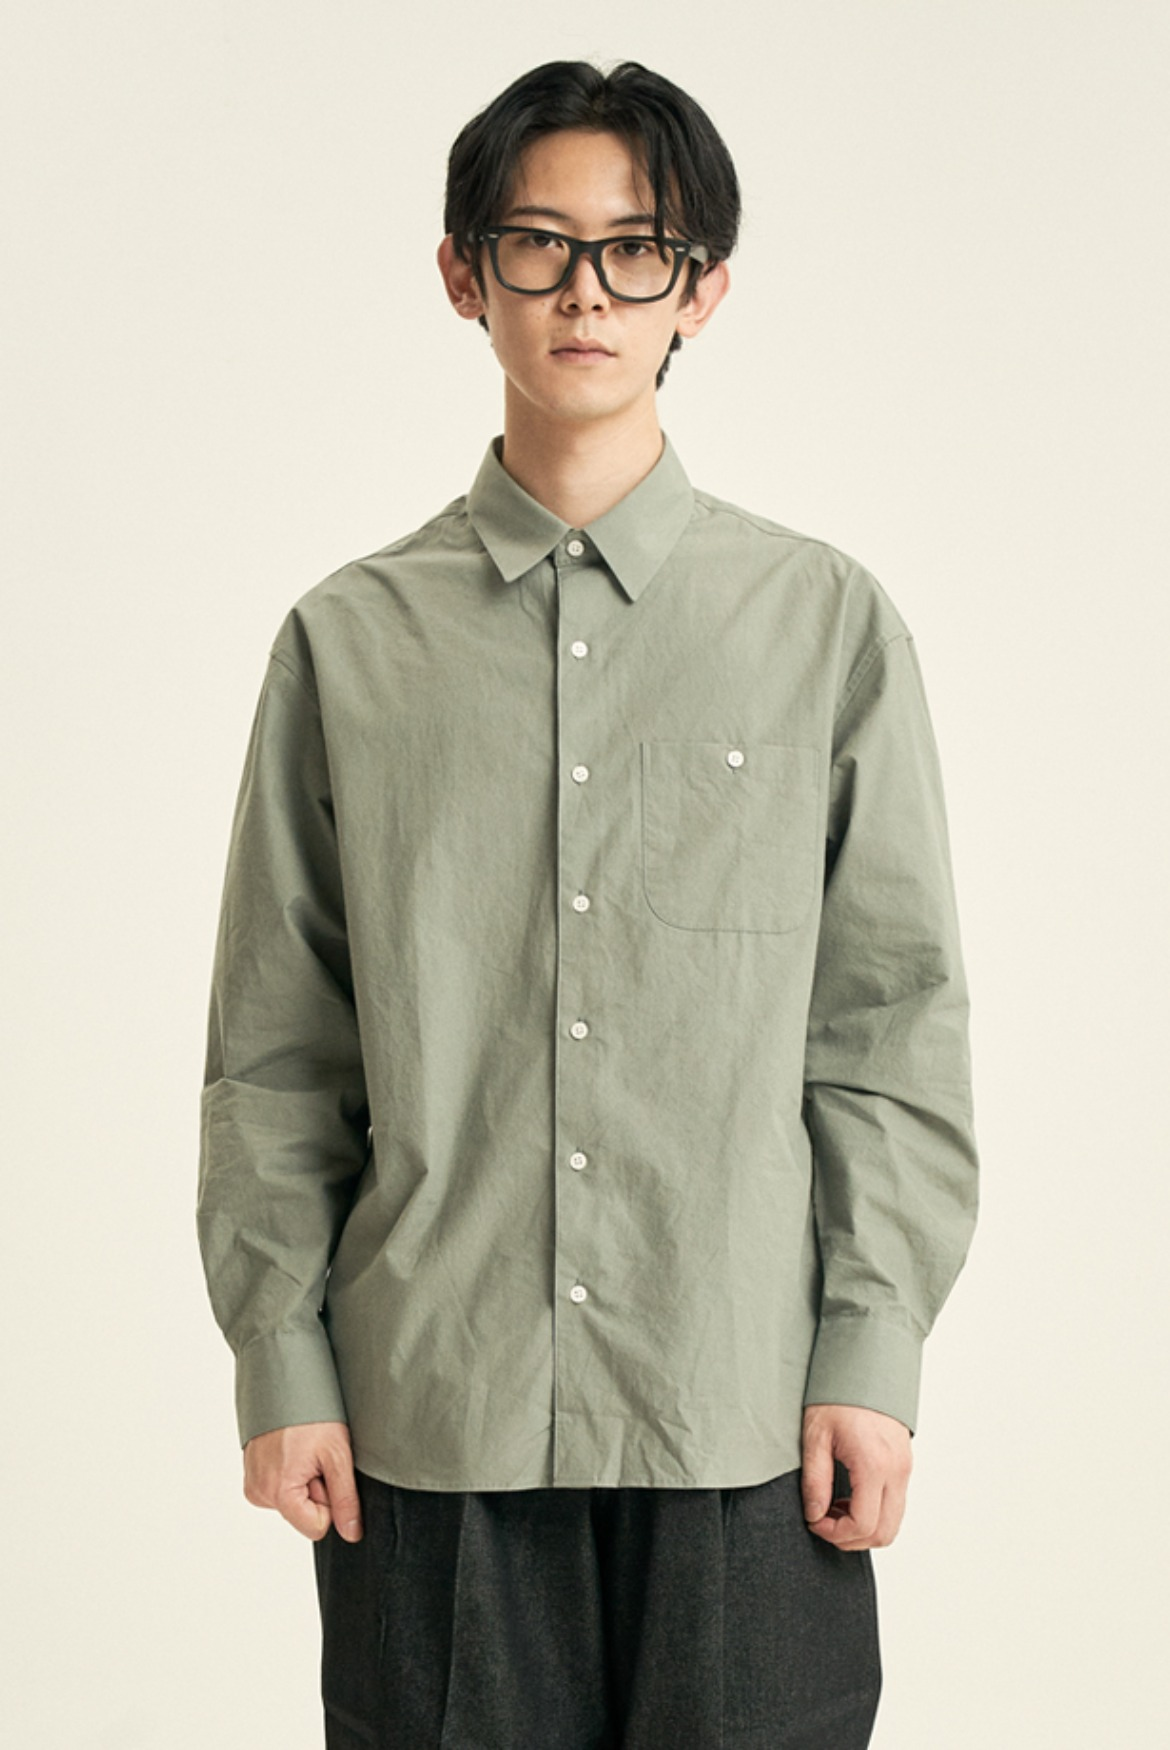 Daily Shirts [Hedge Green]